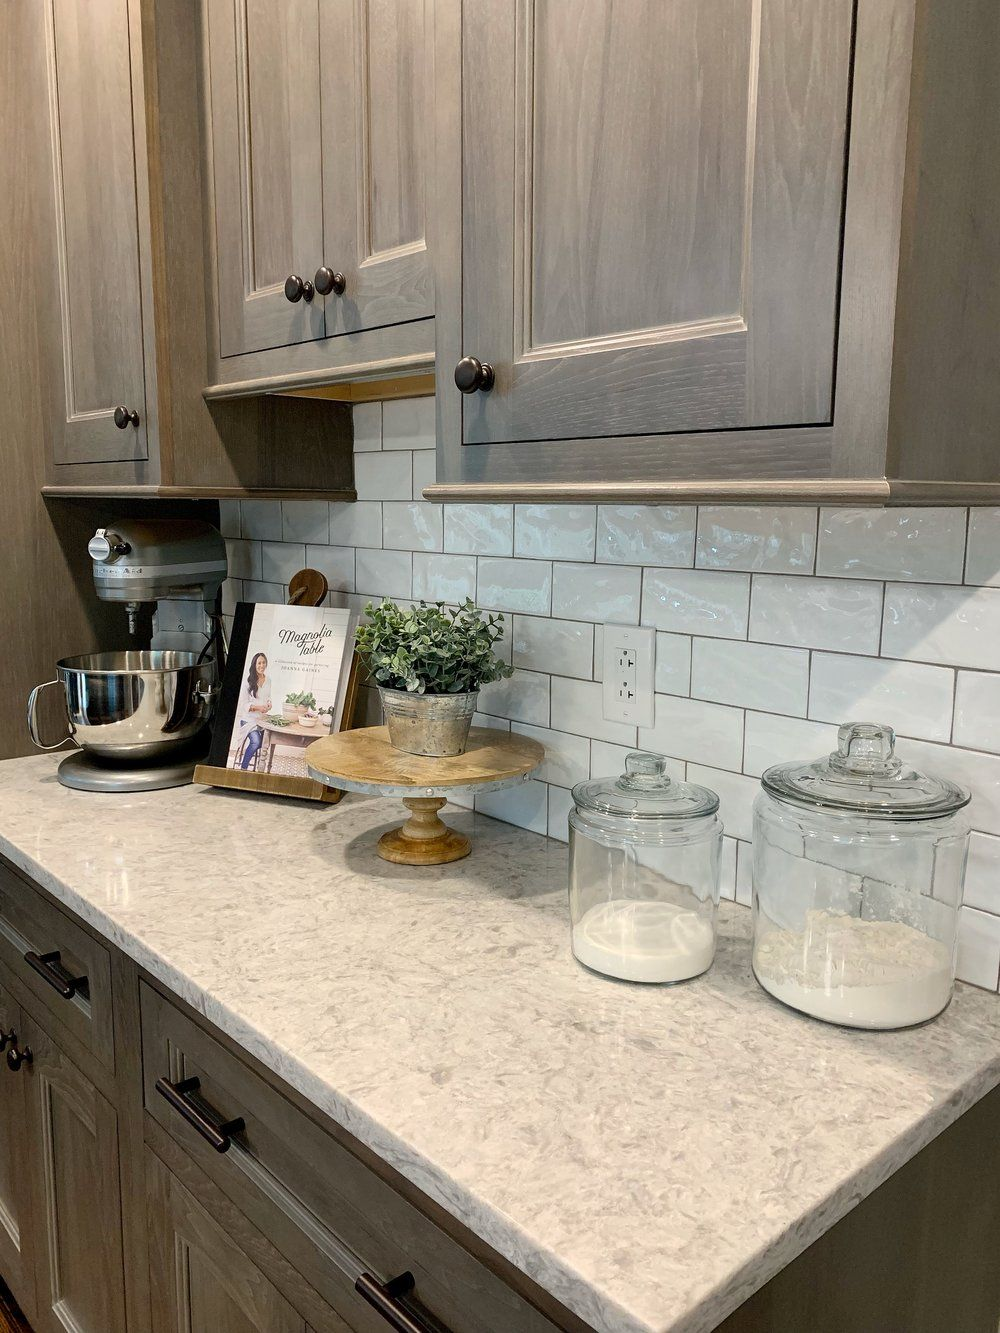 Ideas for Kitchen Countertop Decor in 2020 (With images ... on Kitchen Counter Top Decor  id=58704